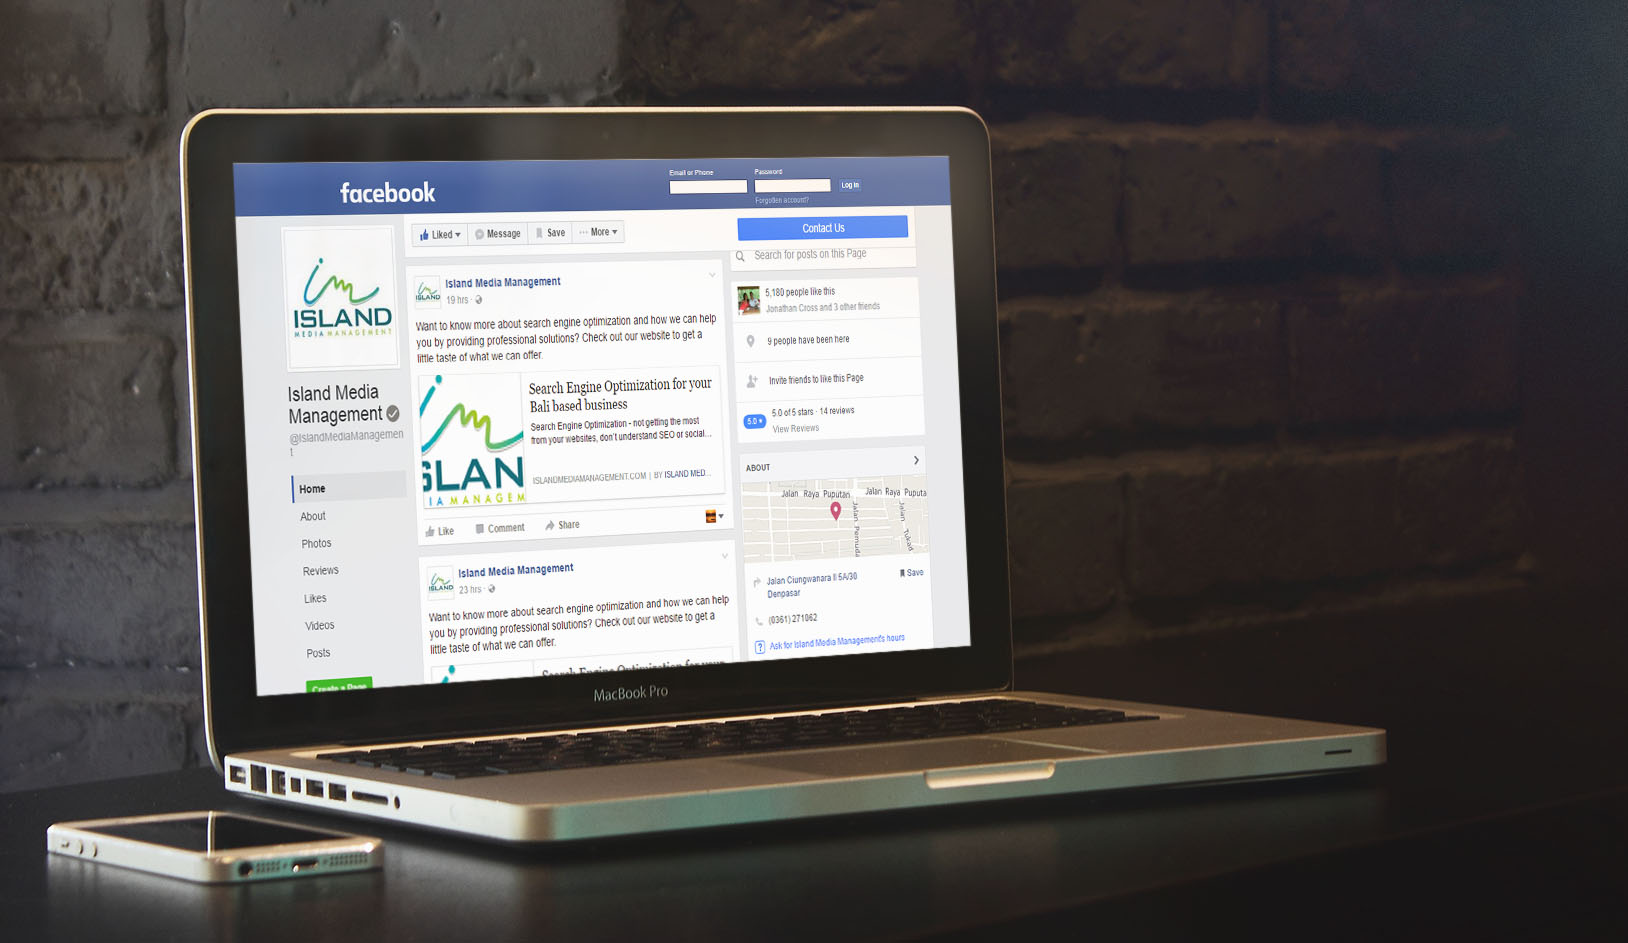 promote your brands and services- How To Increase Facebook Page Reach